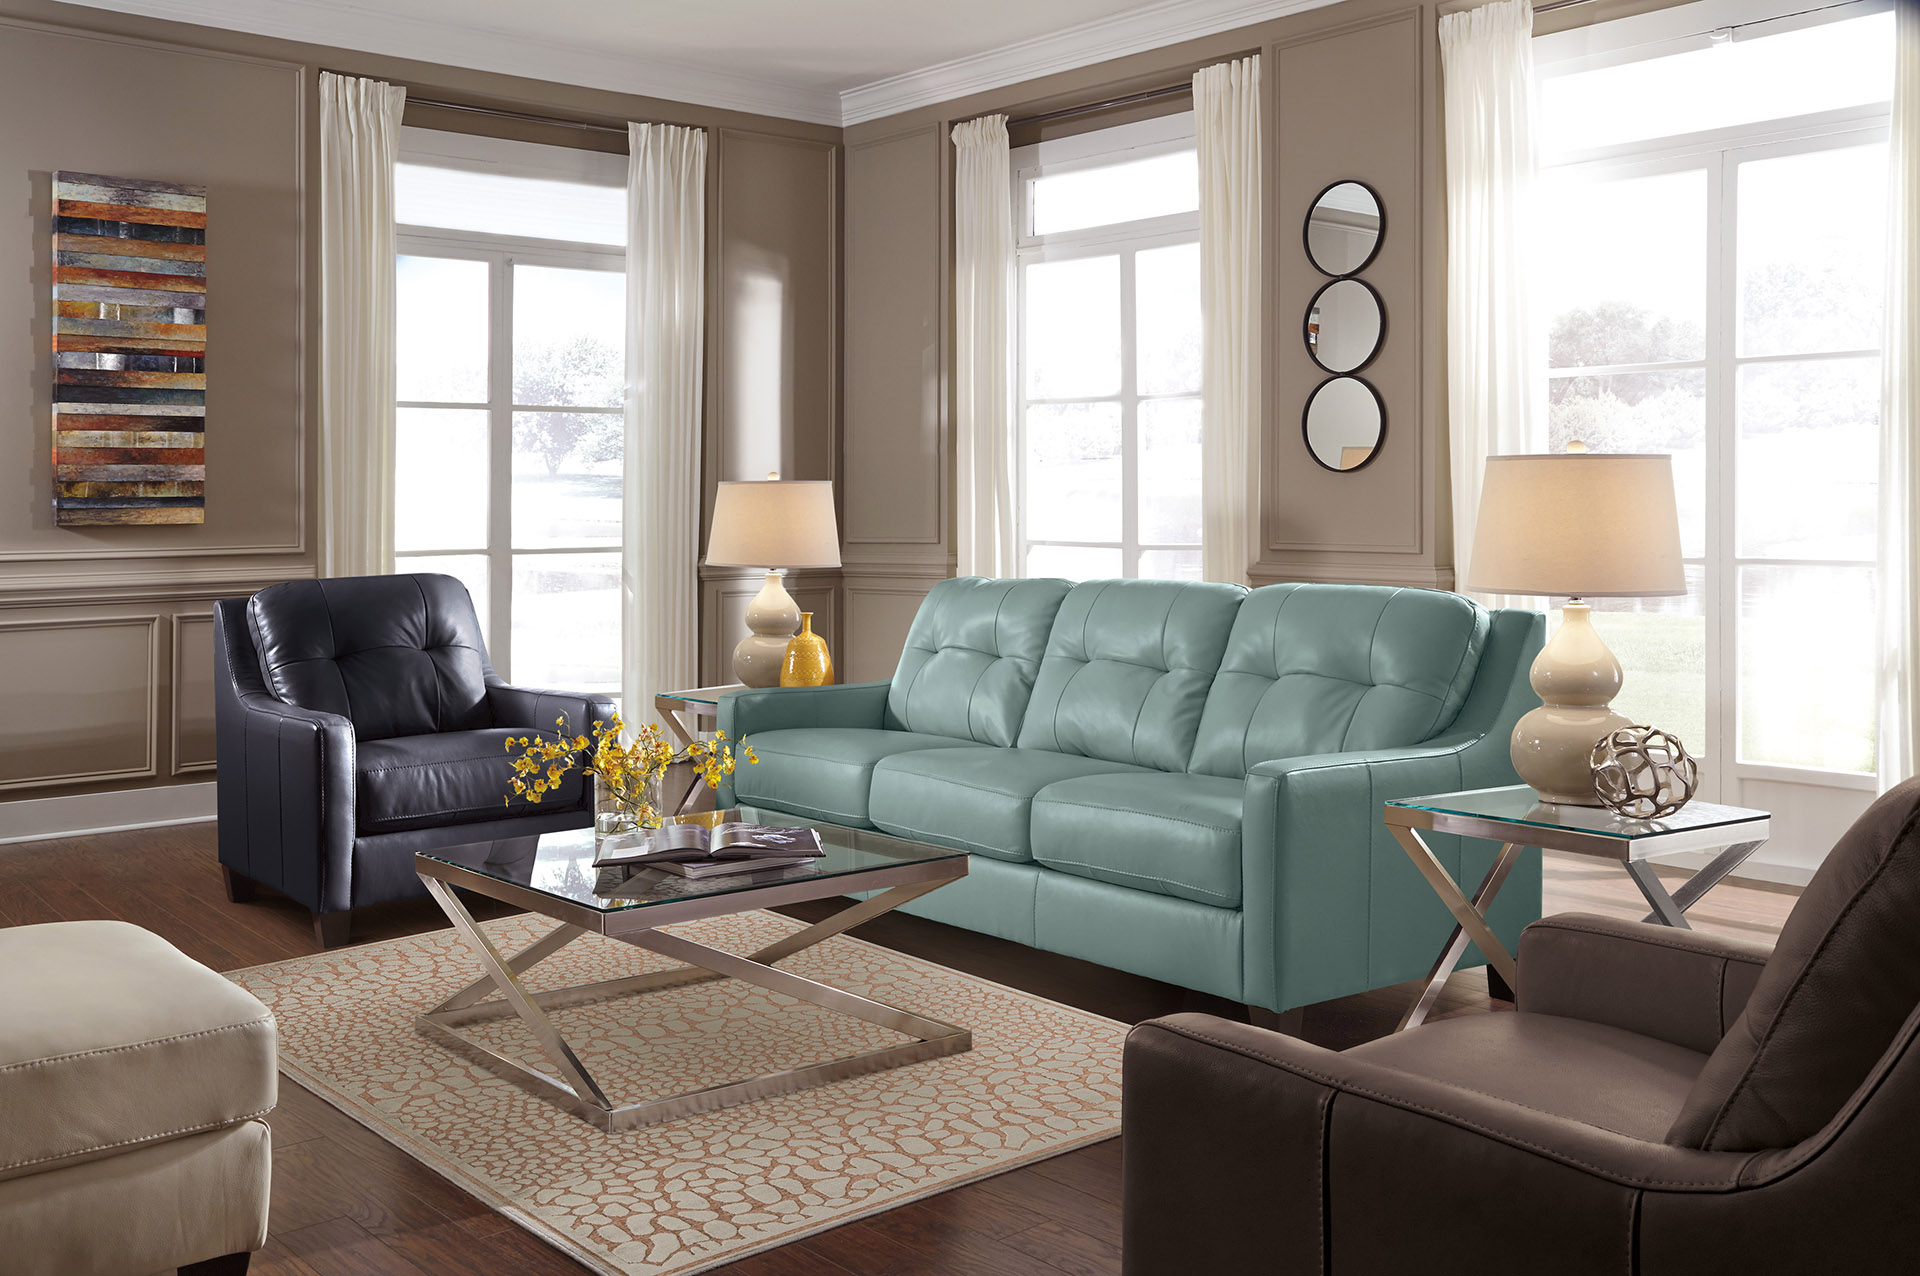 Living Rooms Home Express Furniture We Are Your Trusted Choice For Affordable American Made Furniture As The Largest Furniture Outlet In Reno Nevada